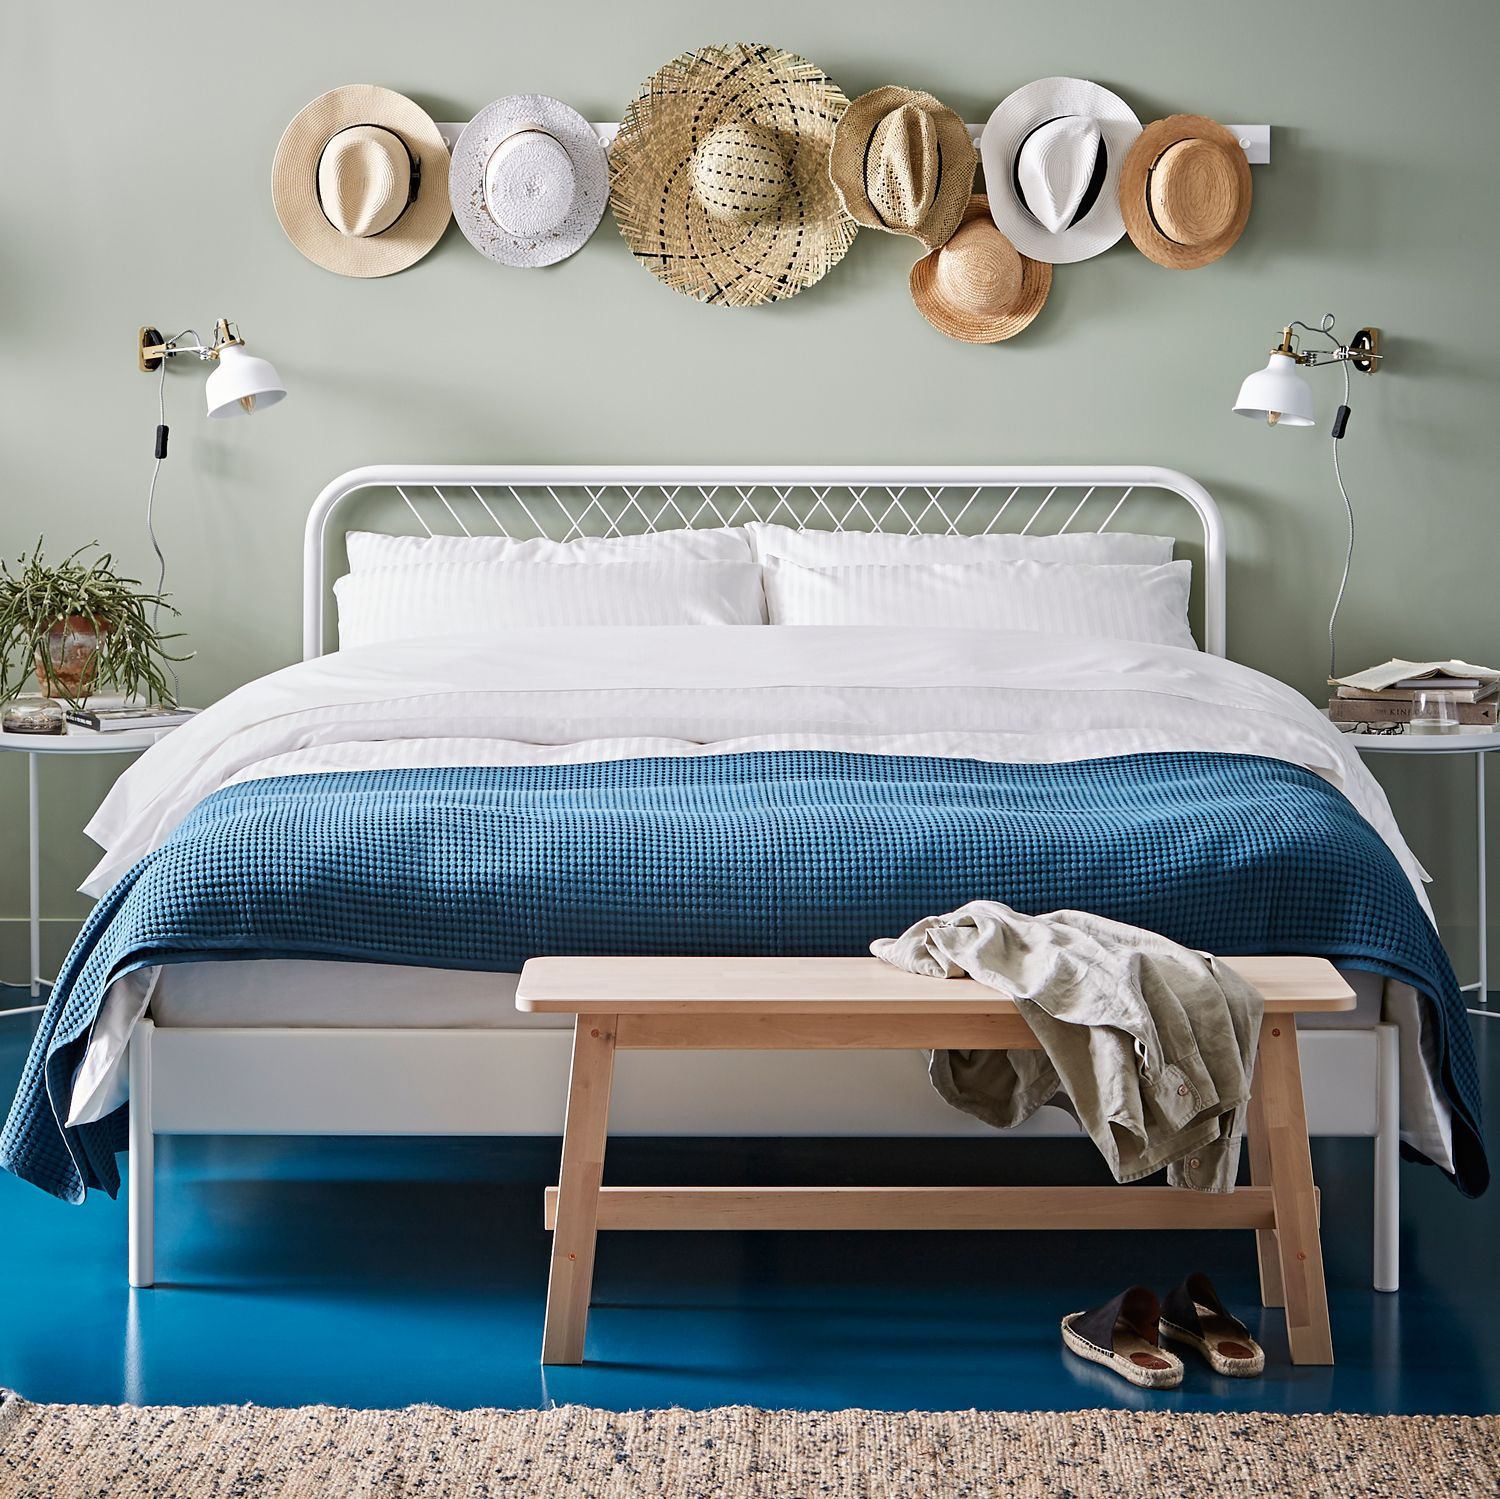 If You're *Always* Tired, Tweaking Your Bedroom Décor Might Just Help